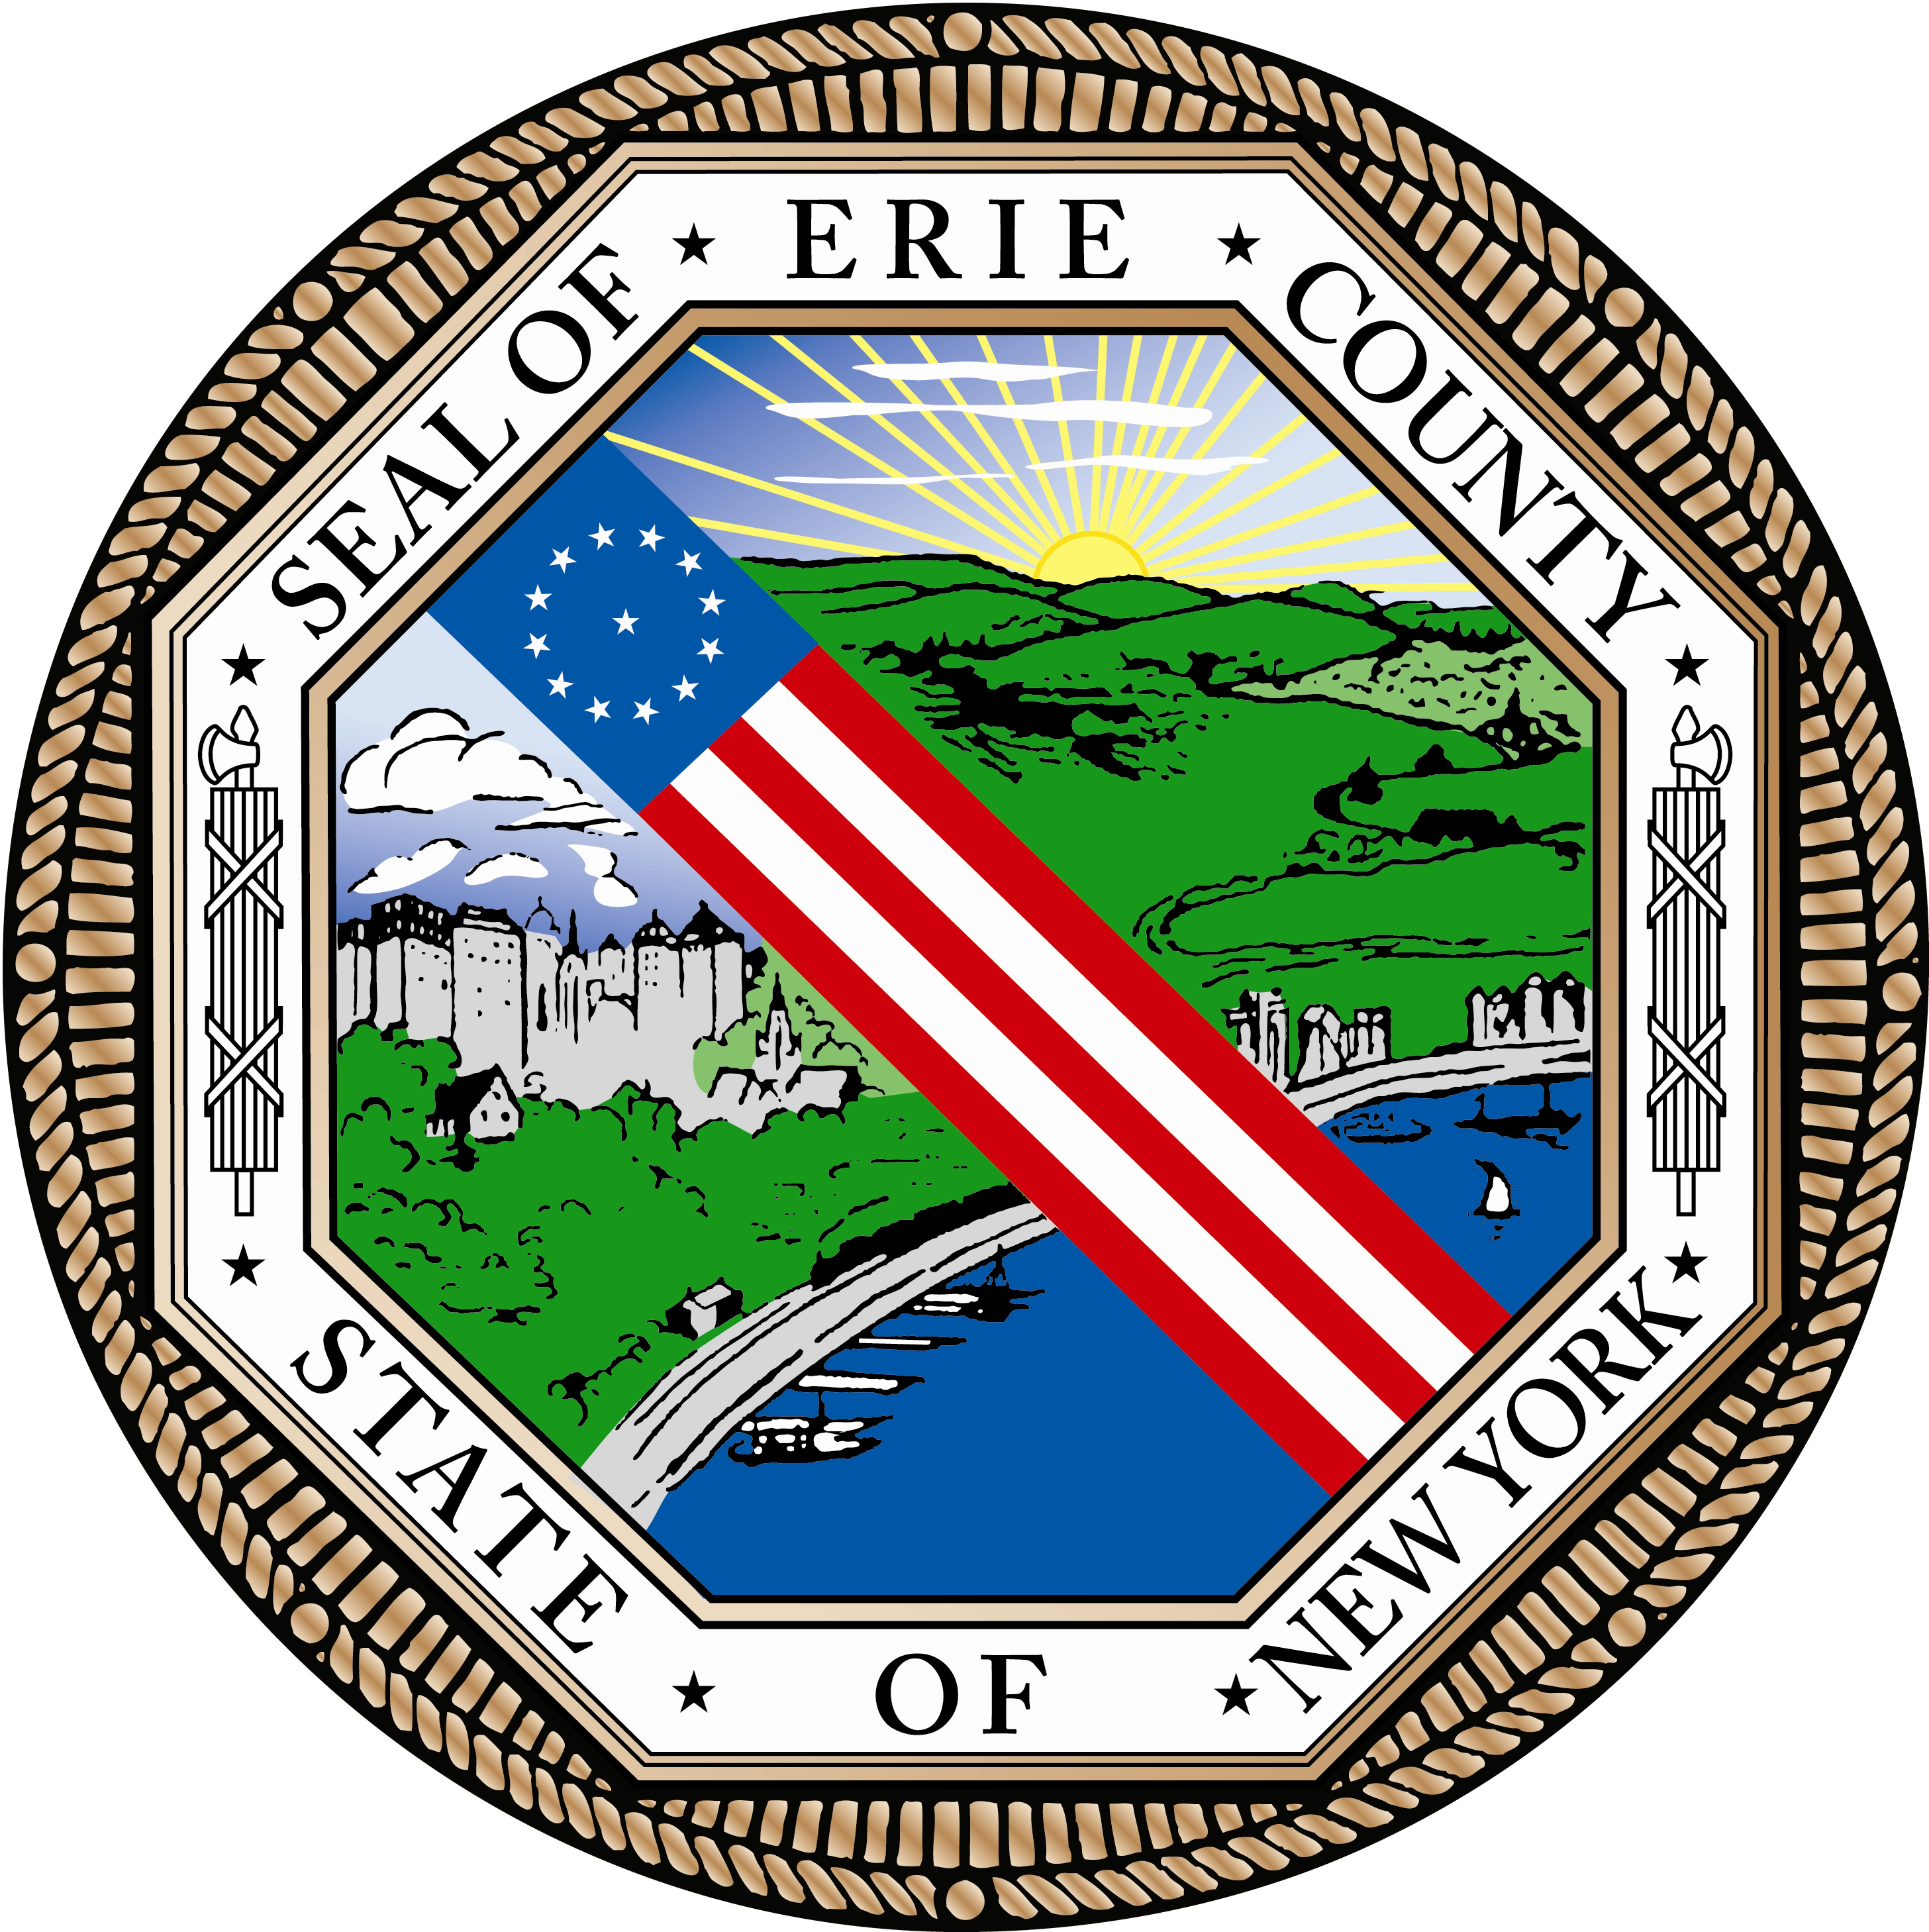 photo: erie county seal